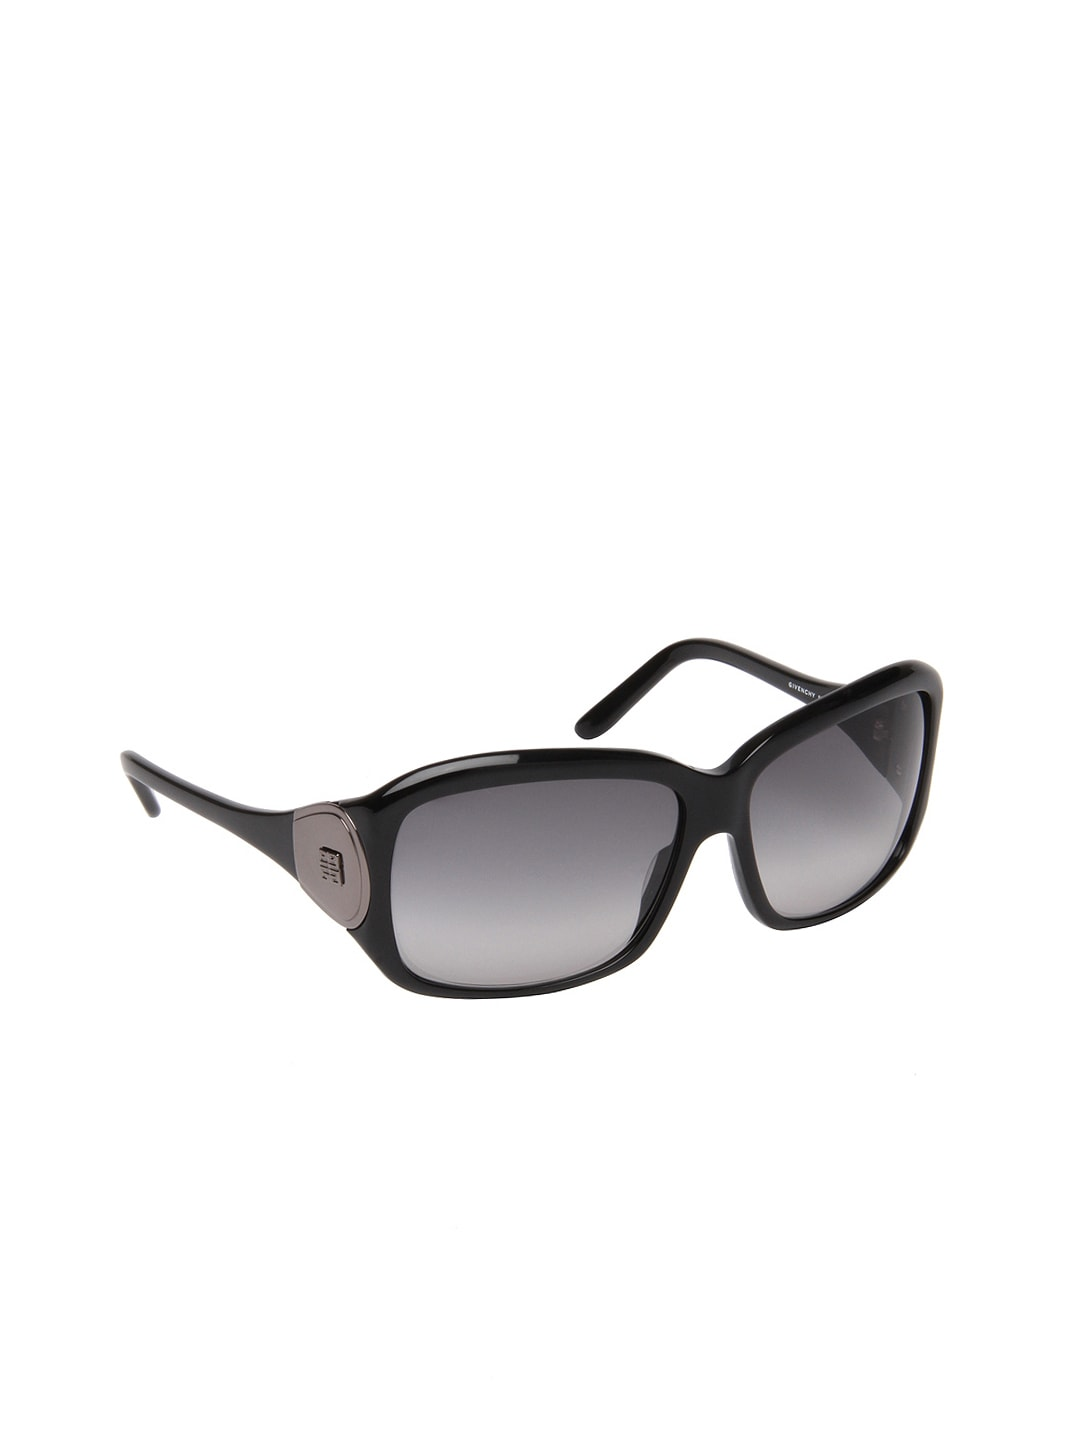 Givenchy Givenchy Women Sunglasses SGV-628N COL-0700 (Multicolor)